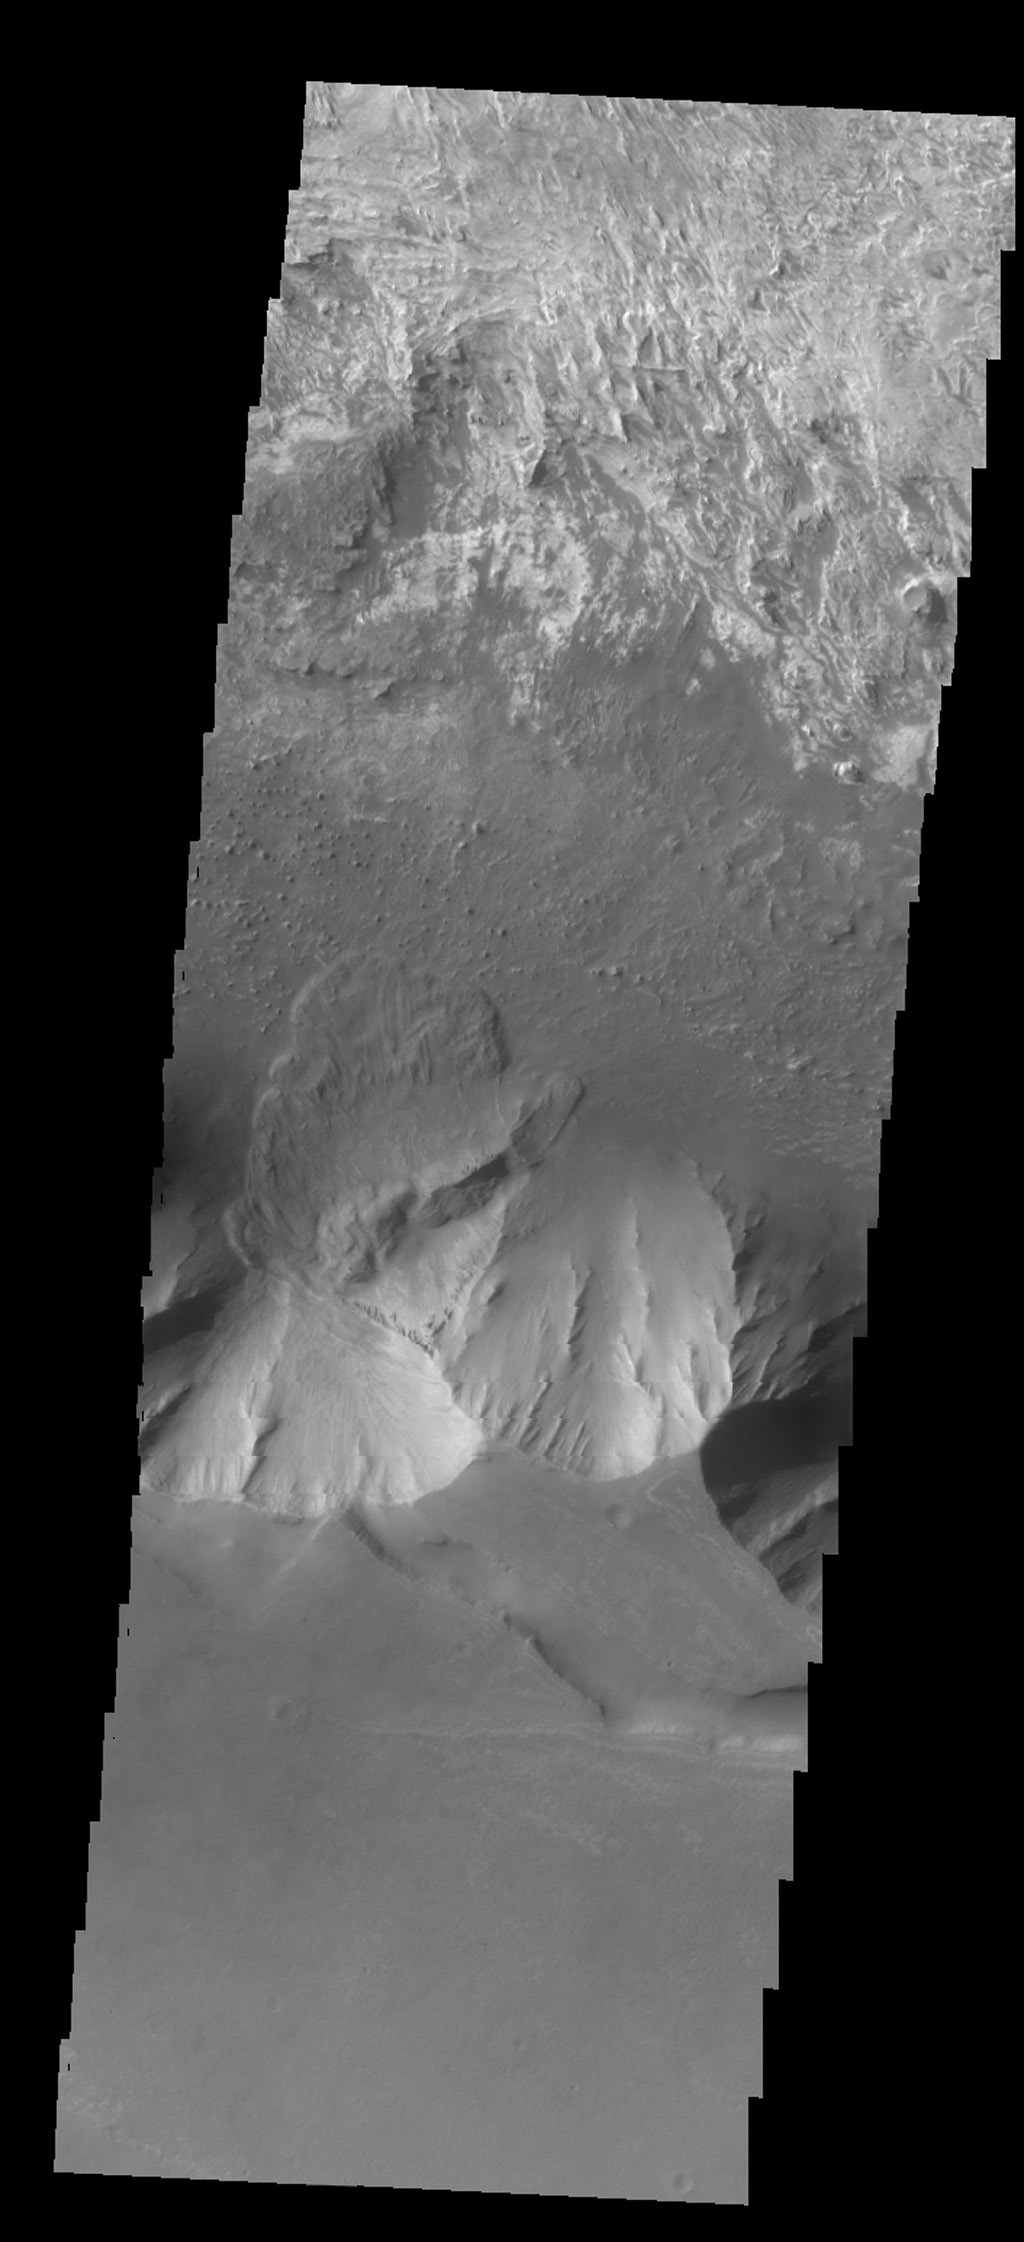 The mitten-shaped feature in Candor Chasma is a landslide deposit in this image from NASA's 2001 Mars Odyssey spacecraft.